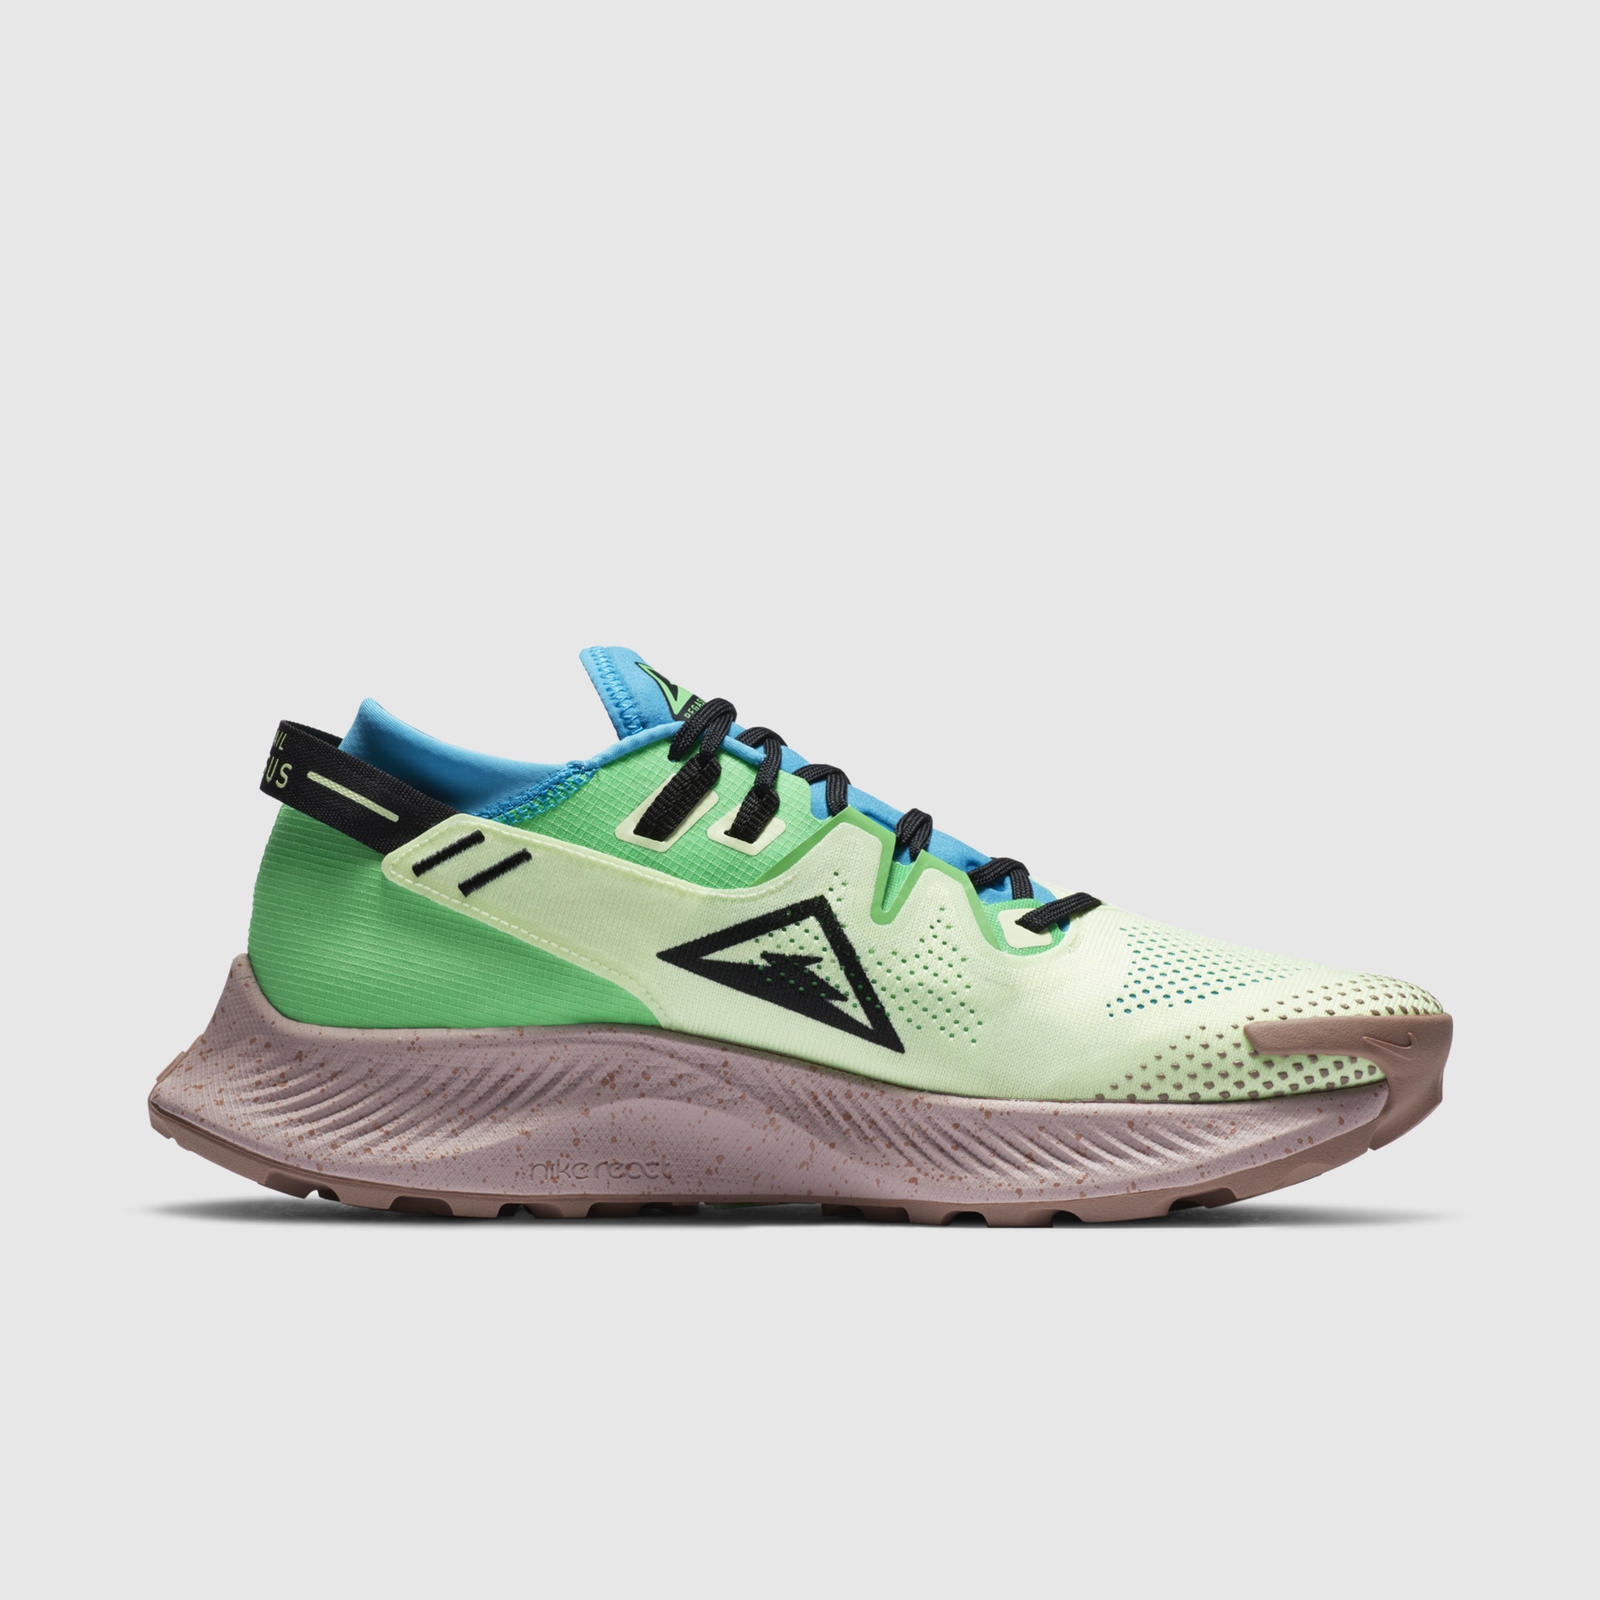 Nike Trail Wildhorse 6 Air Zoom Terra Kiger 6 Official Images and Release Date 21